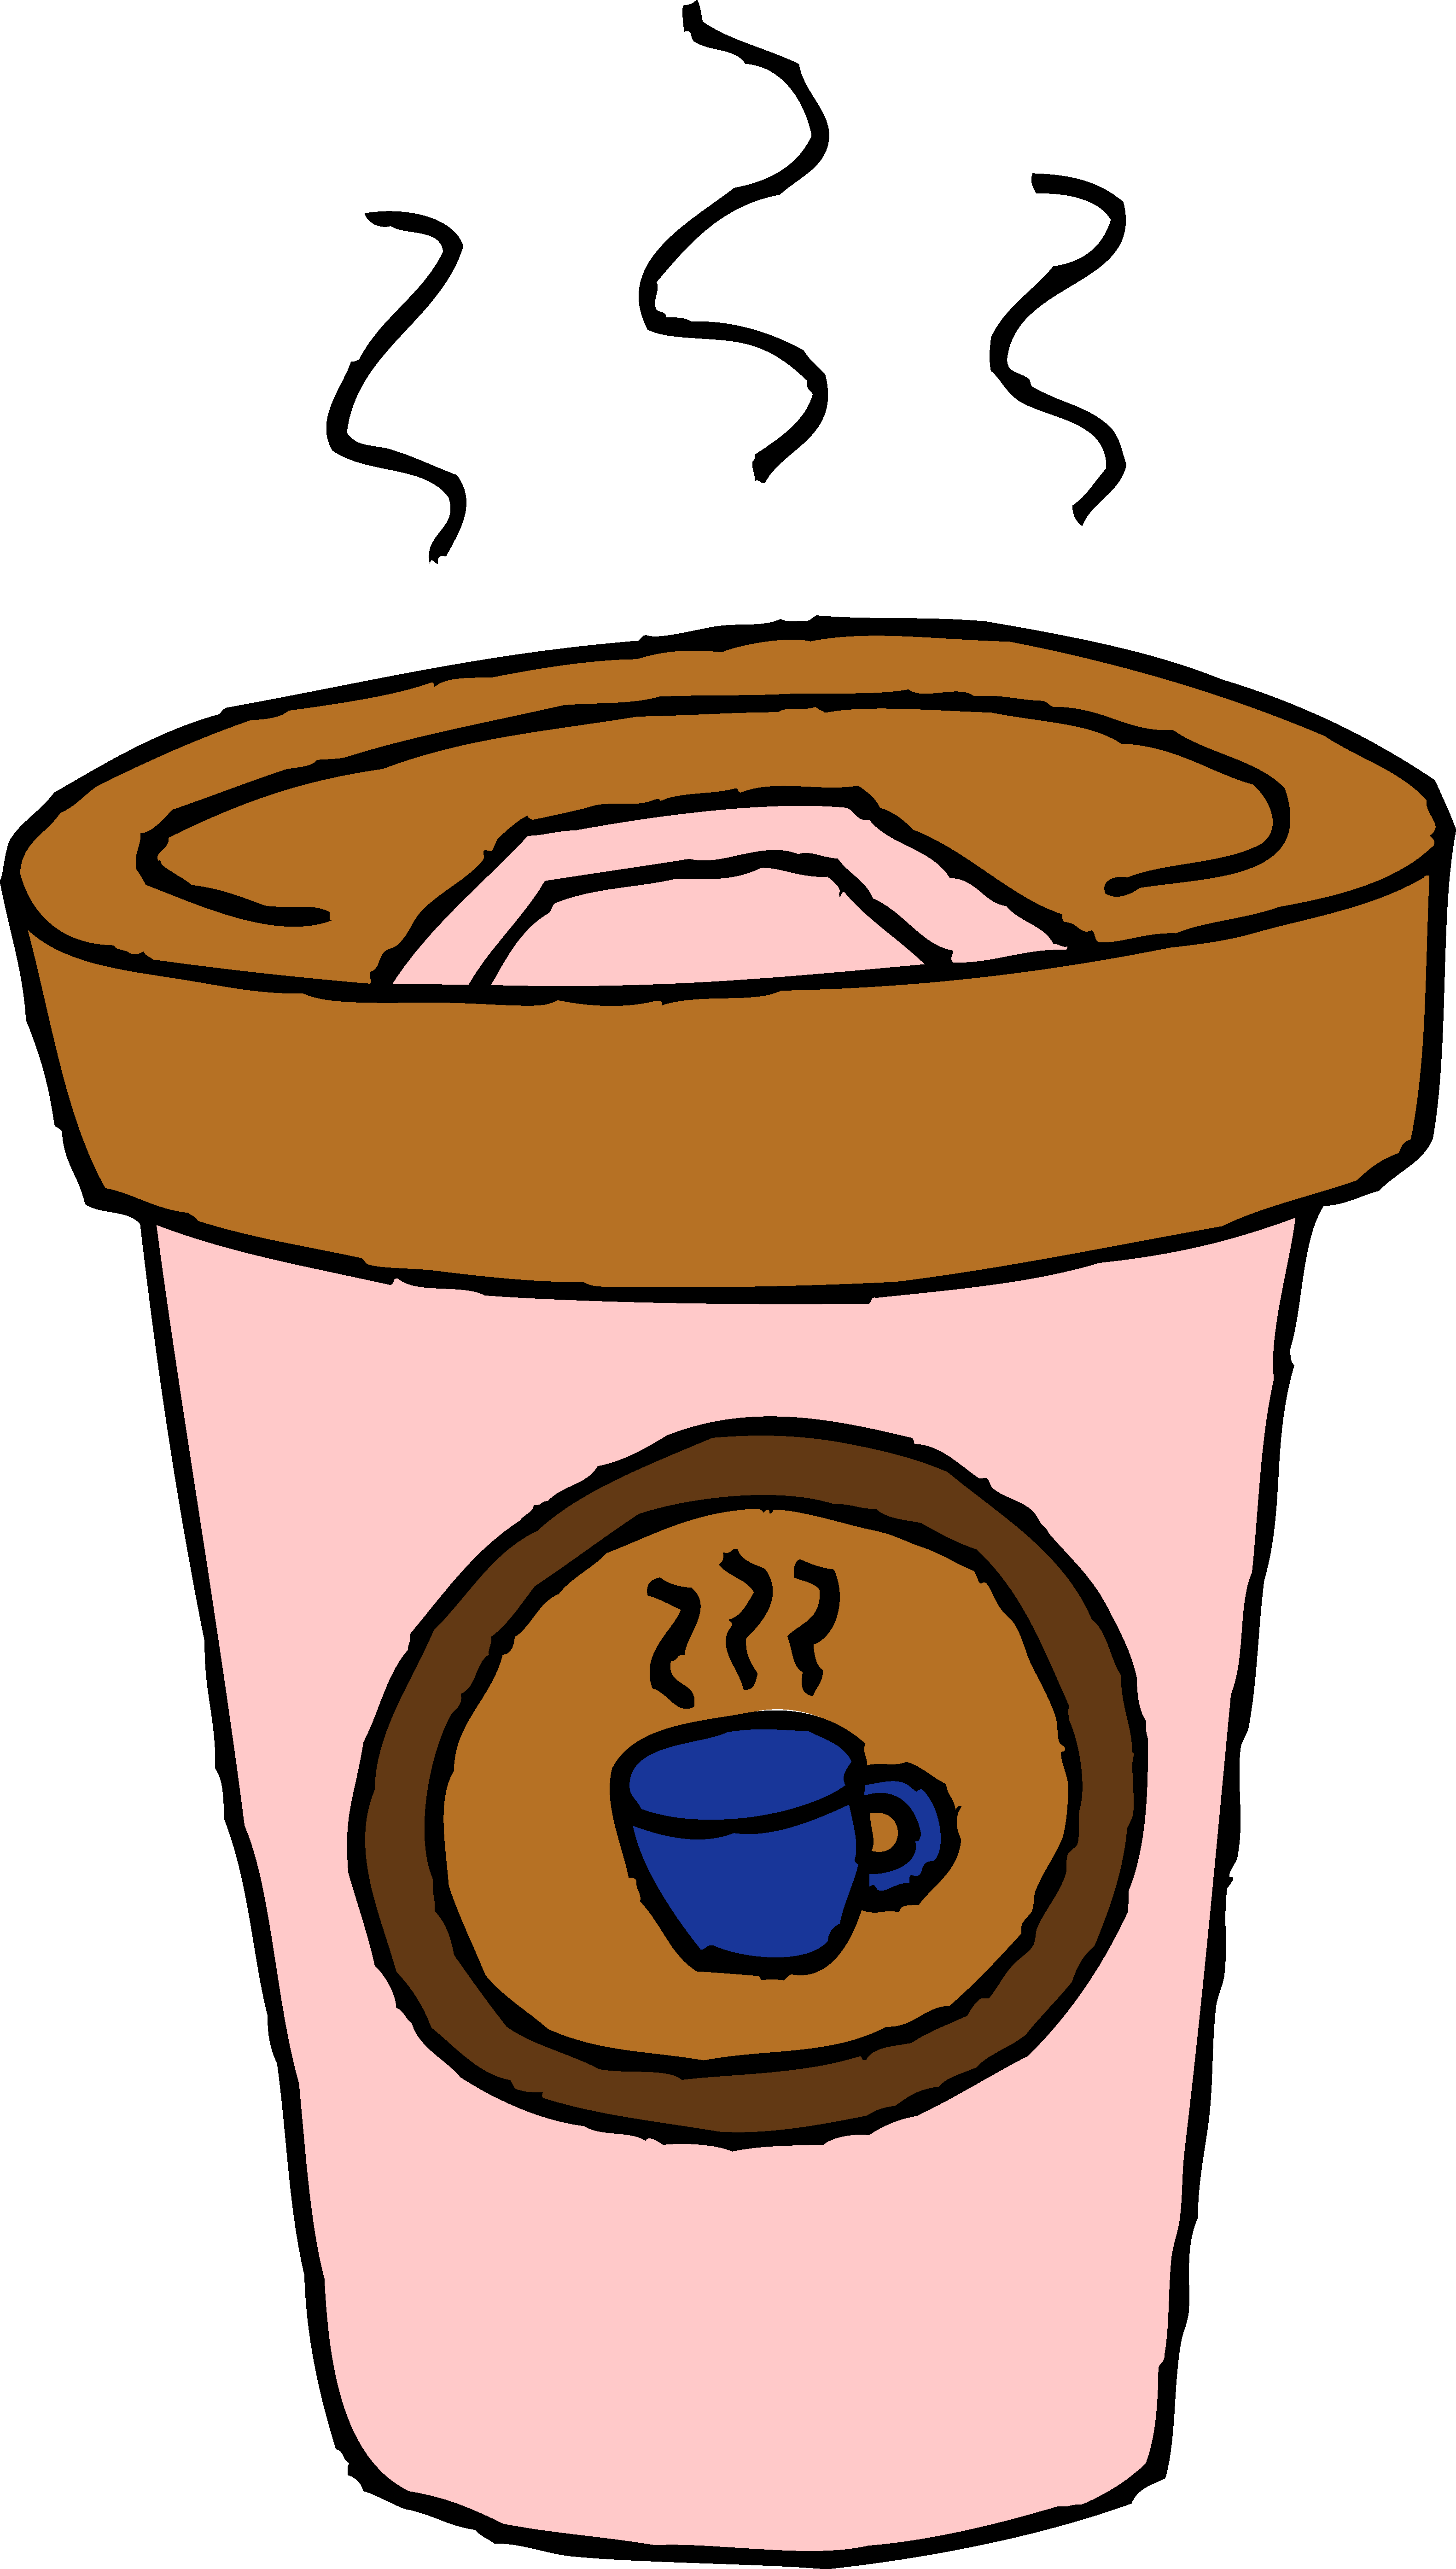 Clipart coffee animasi. Animated cafe cliparts zone